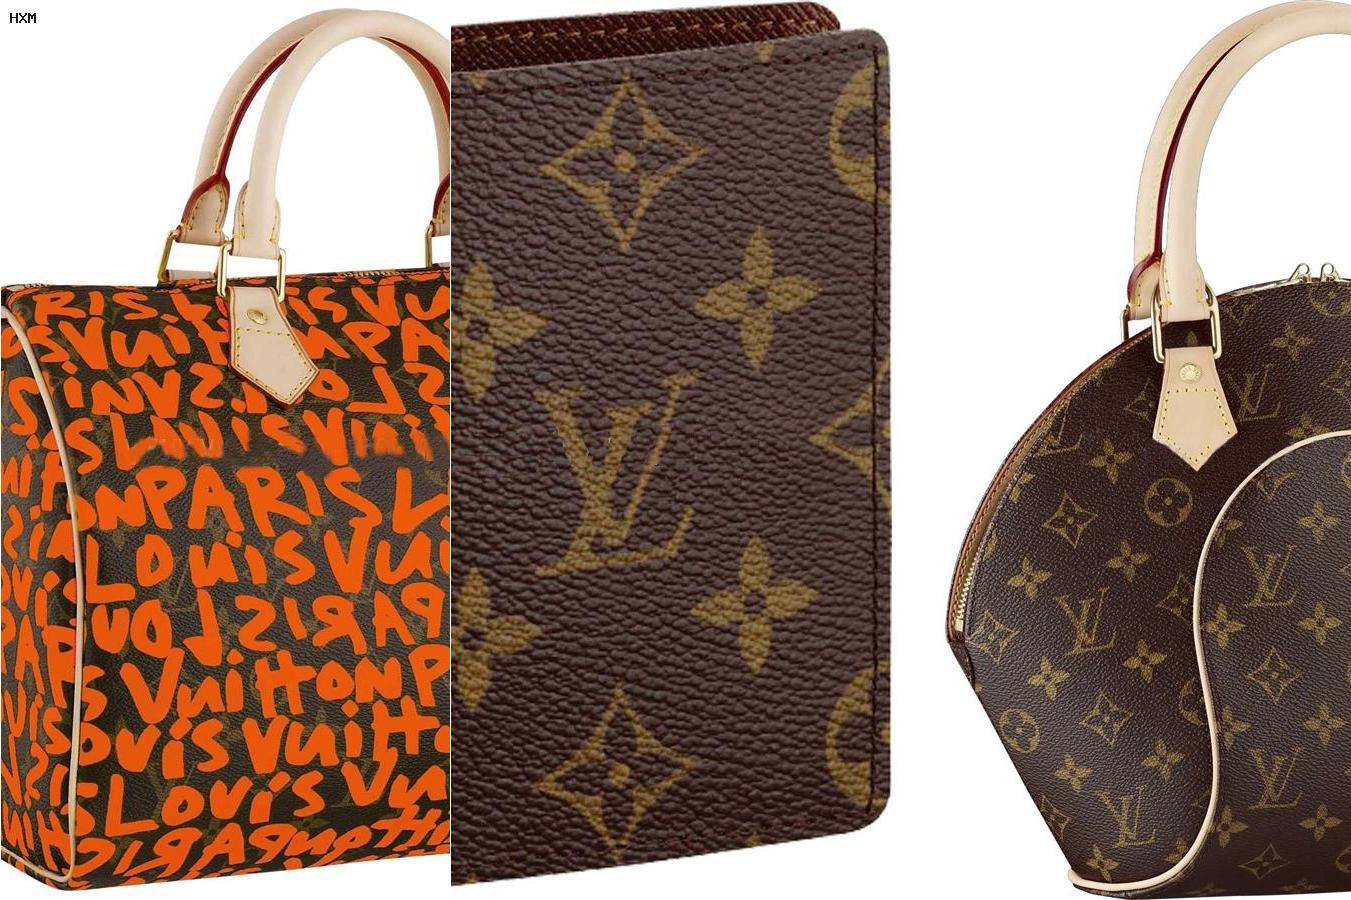 lv italy online store